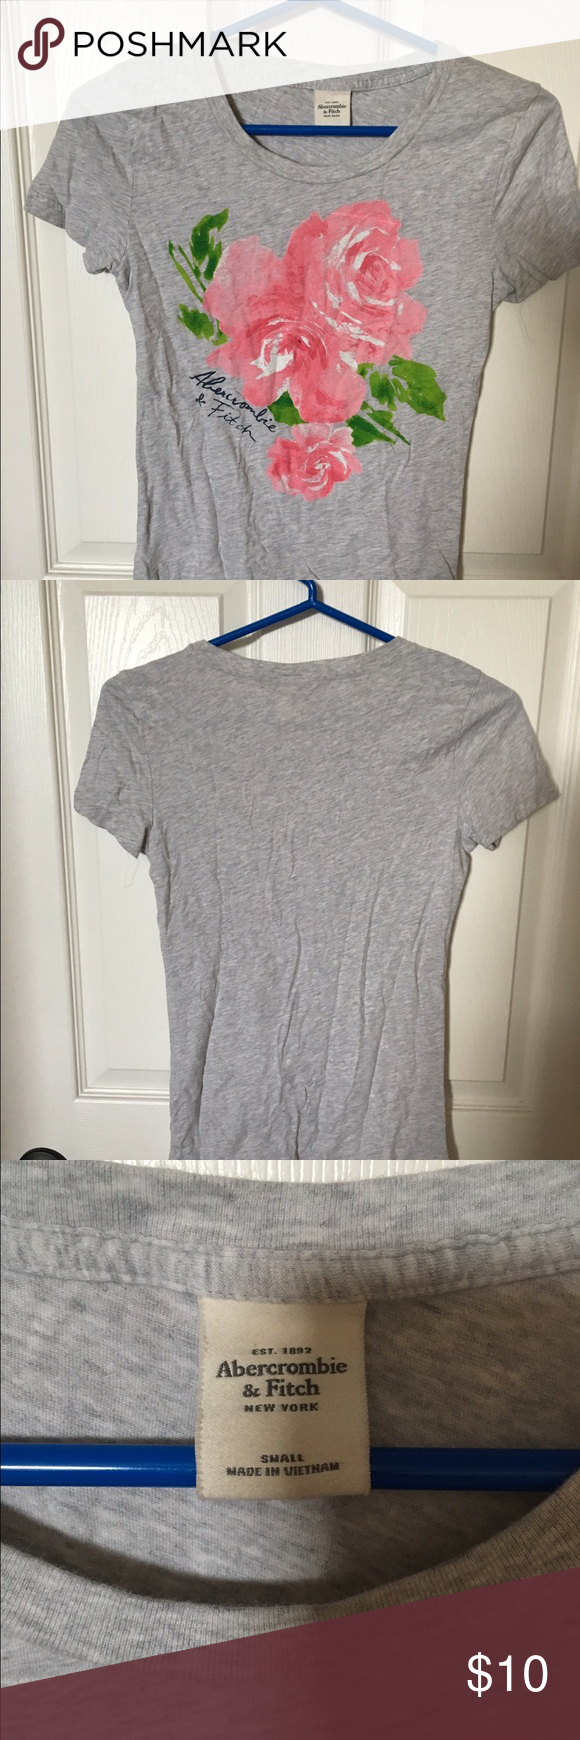 Abercrombie & Fitch t shirt Super cute Abercrombie & Fitch tee shirt in excellent condition. size S Abercrombie & Fitch Tops Tees - Short Sleeve